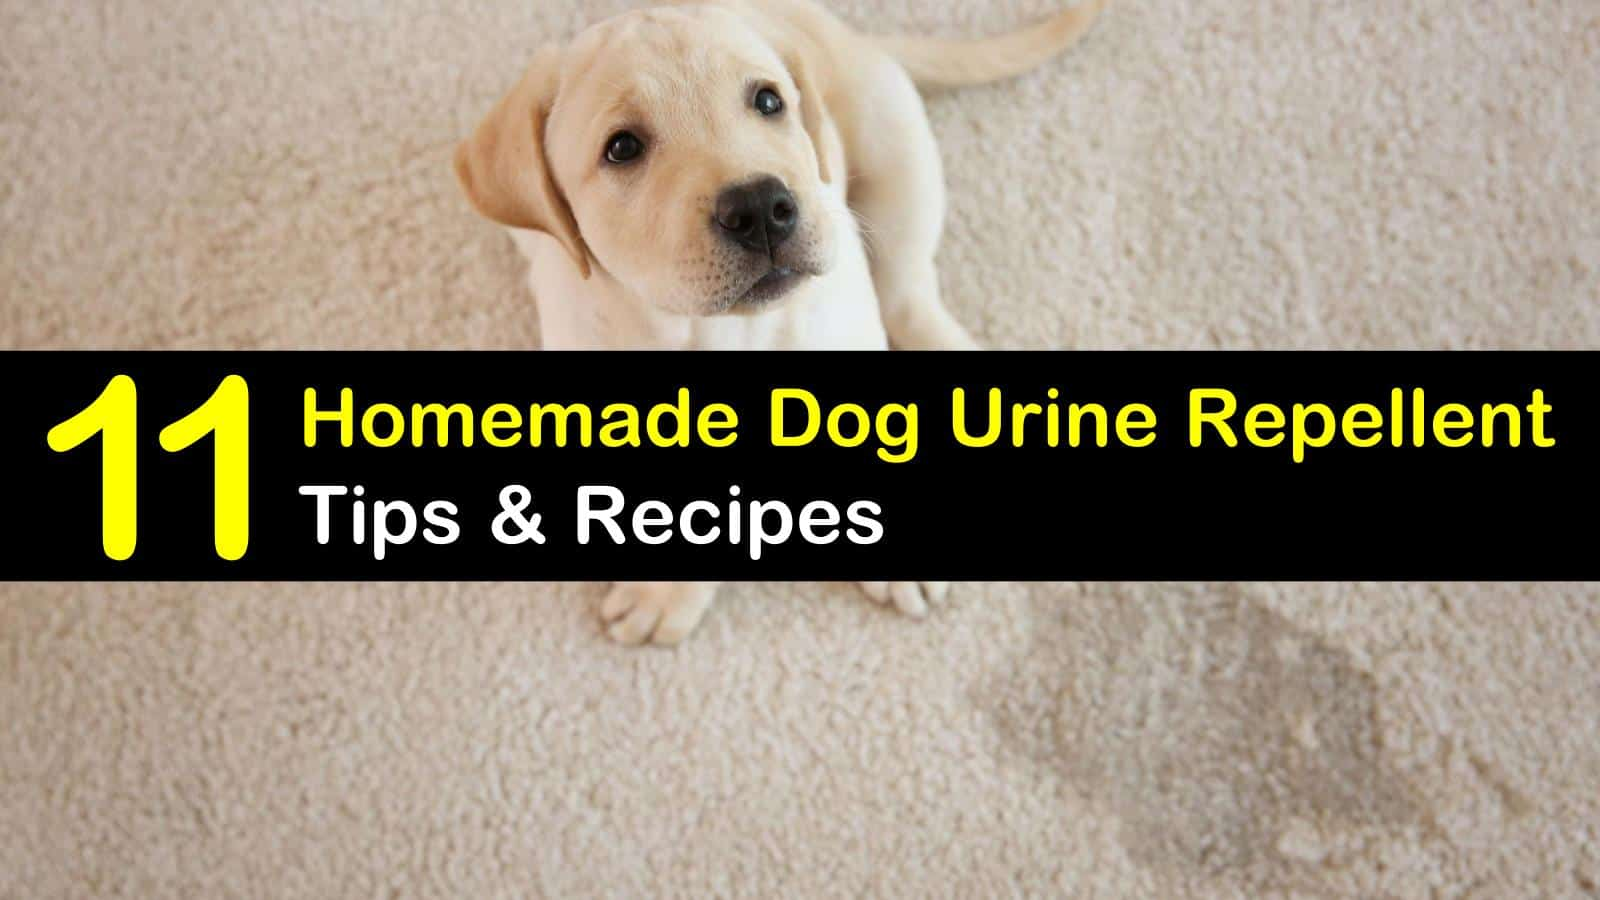 Keeping Dogs Away - 11 Homemade Dog Urine Repellent Tips and Recipes